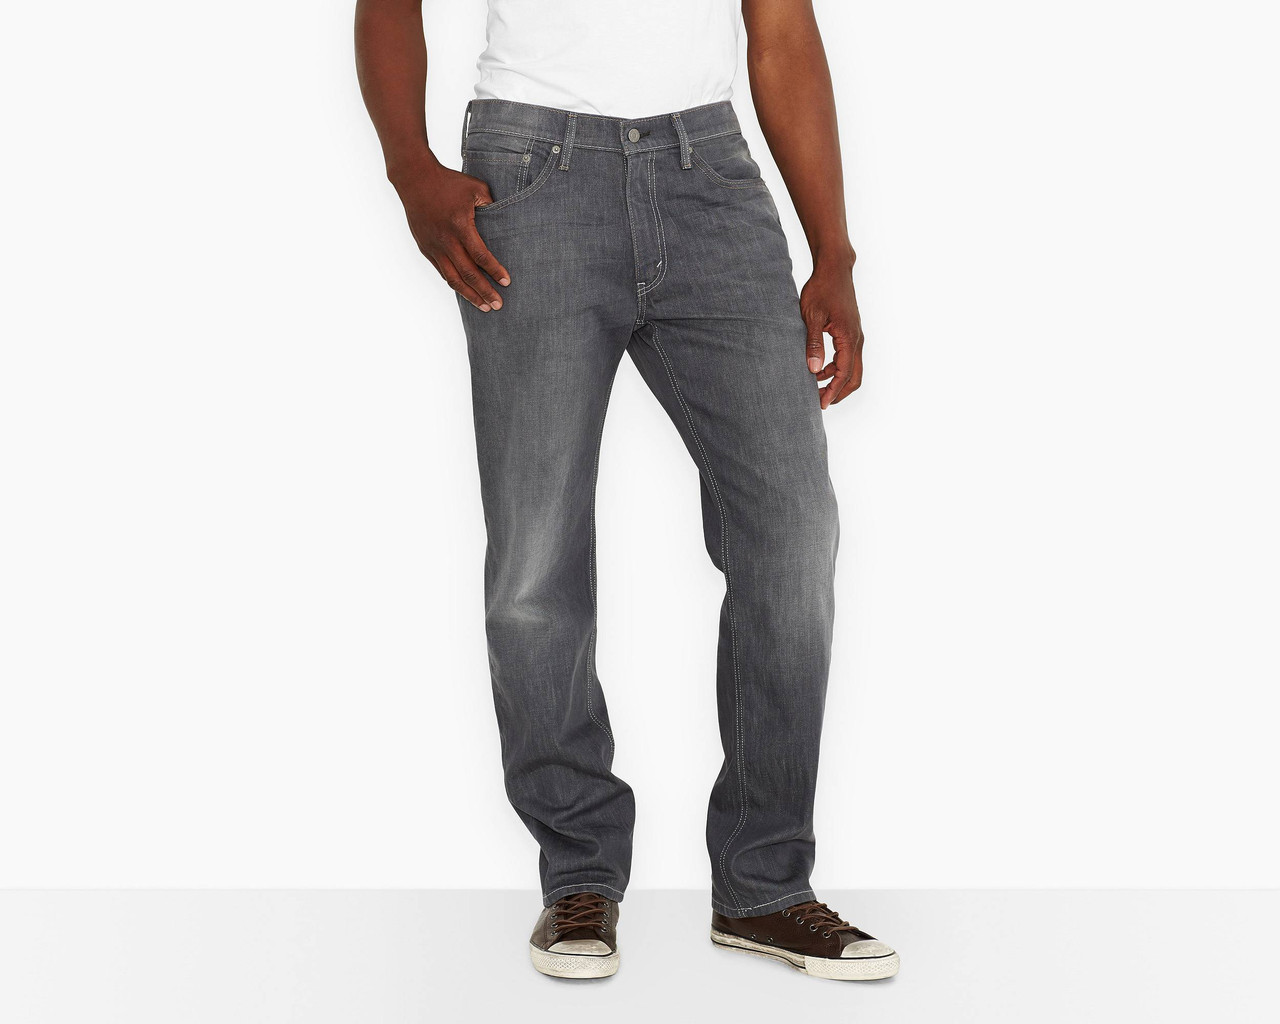 Джинсы Levi's 541 Athletic Fit, King's Canyon, 30W32L, 181810021